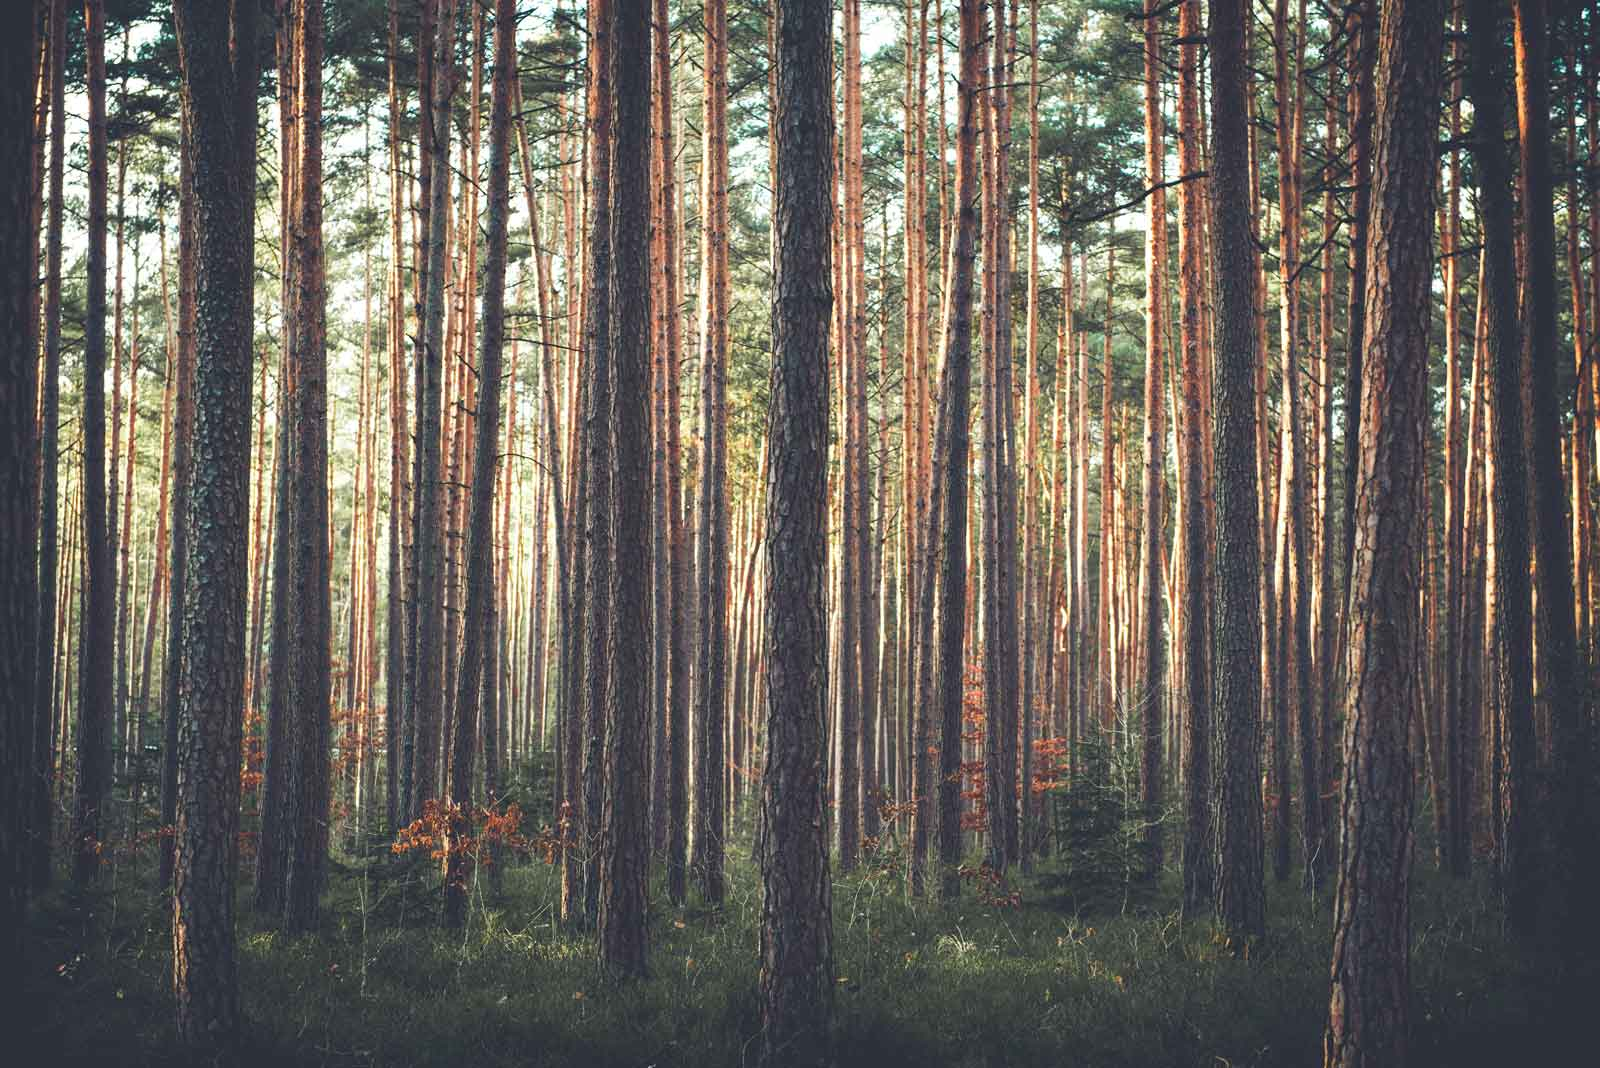 The Wood and the Trees